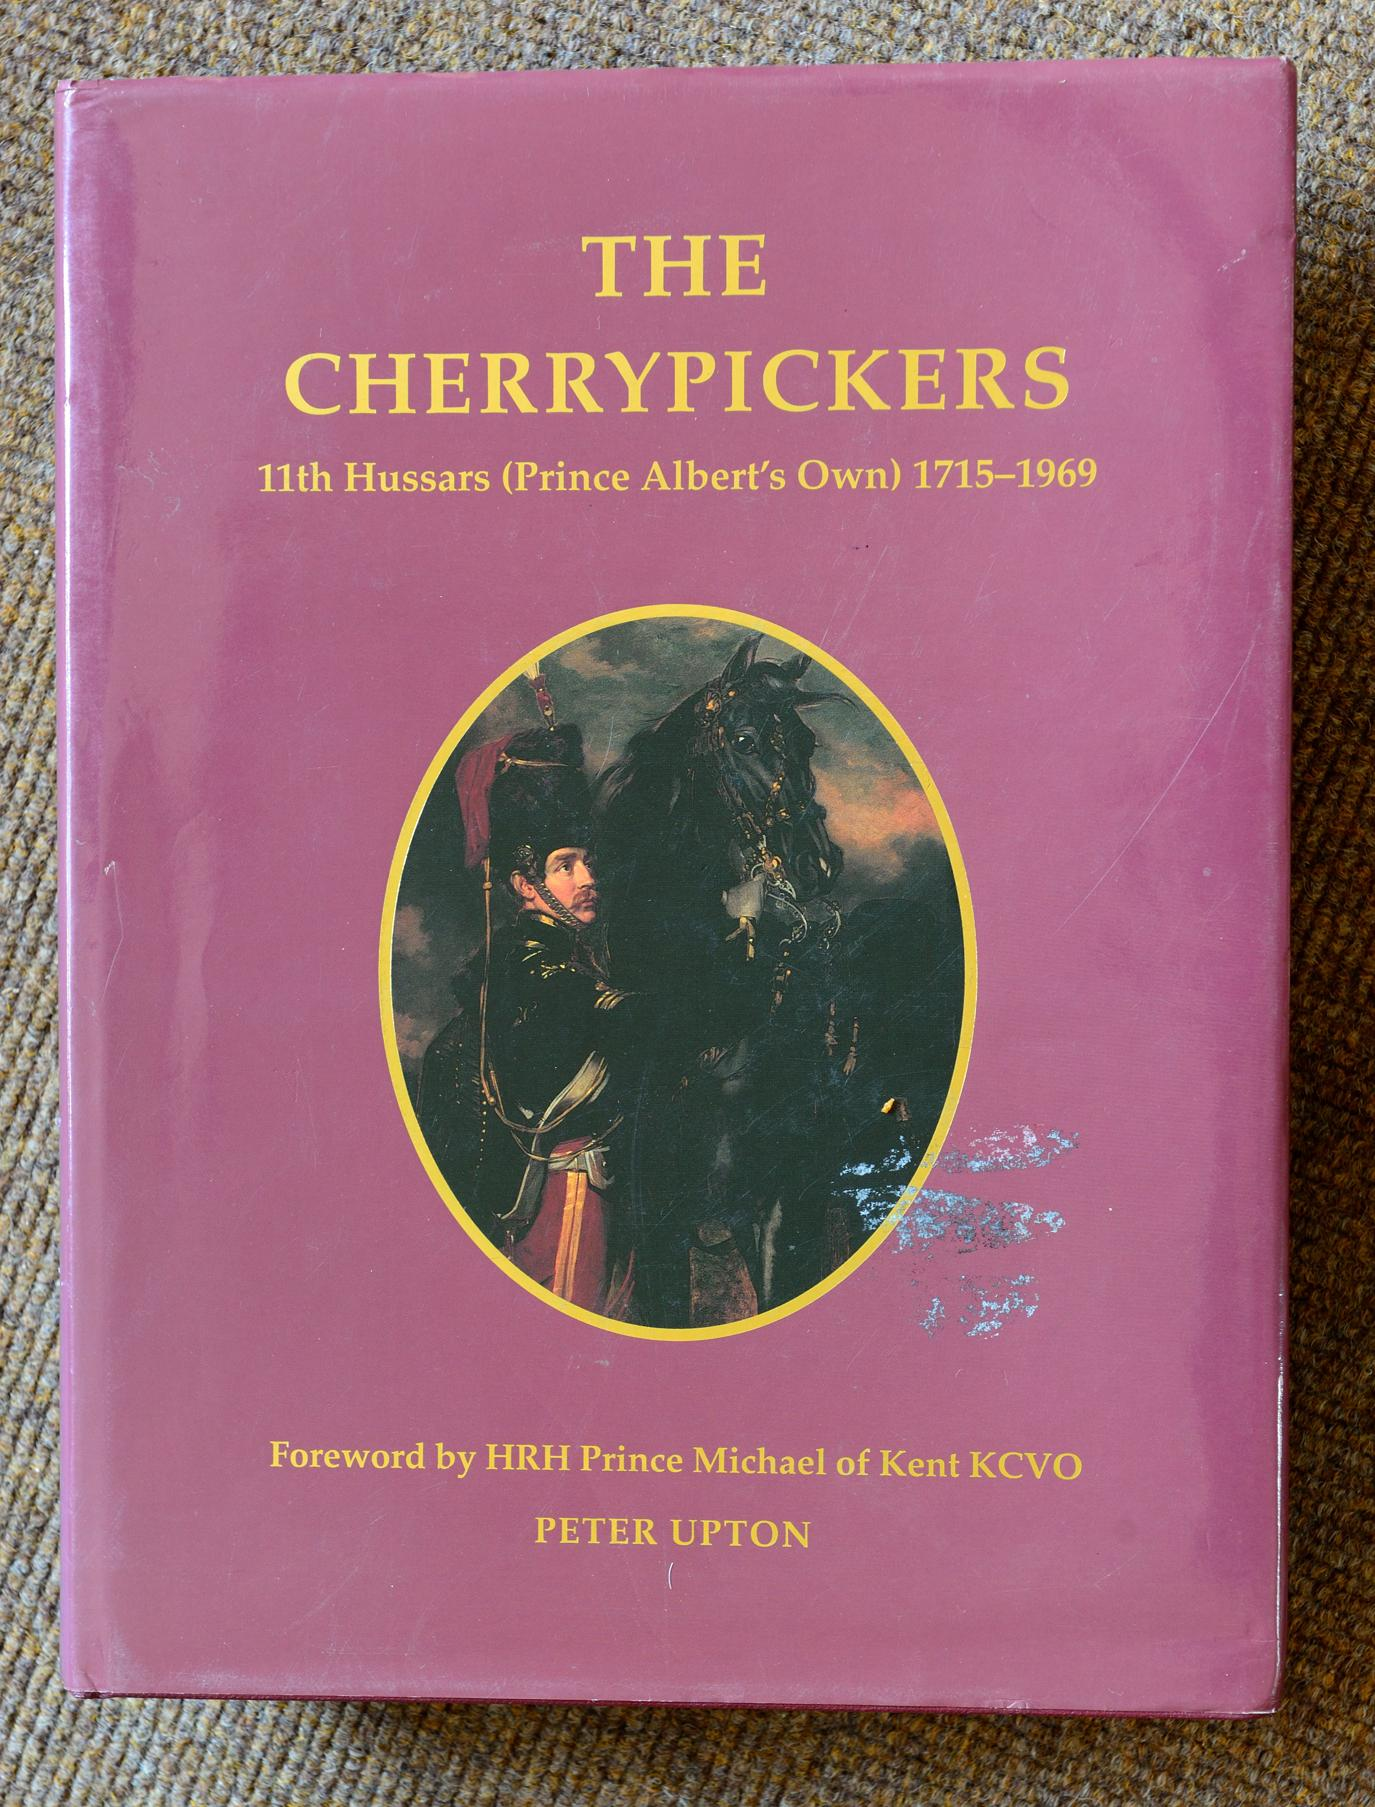 The Cherrypickers